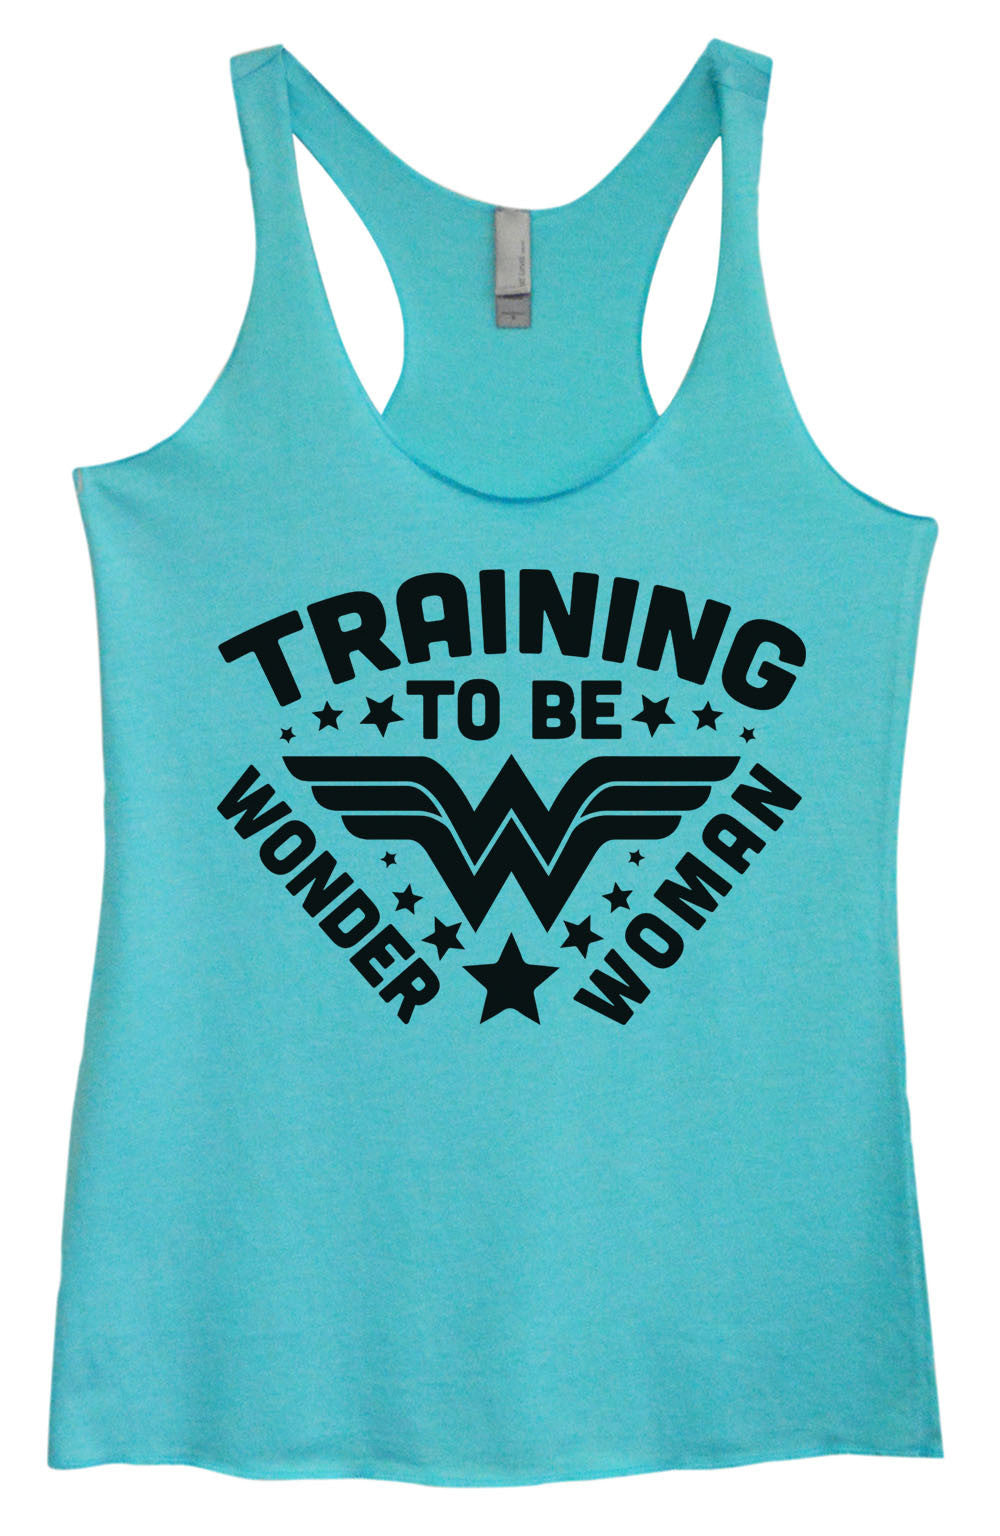 Womens Fashion Triblend Tank Top - Training To Be Wonder Woman - Tri-966 - Funny Shirts Tank Tops Burnouts and Triblends  - 1